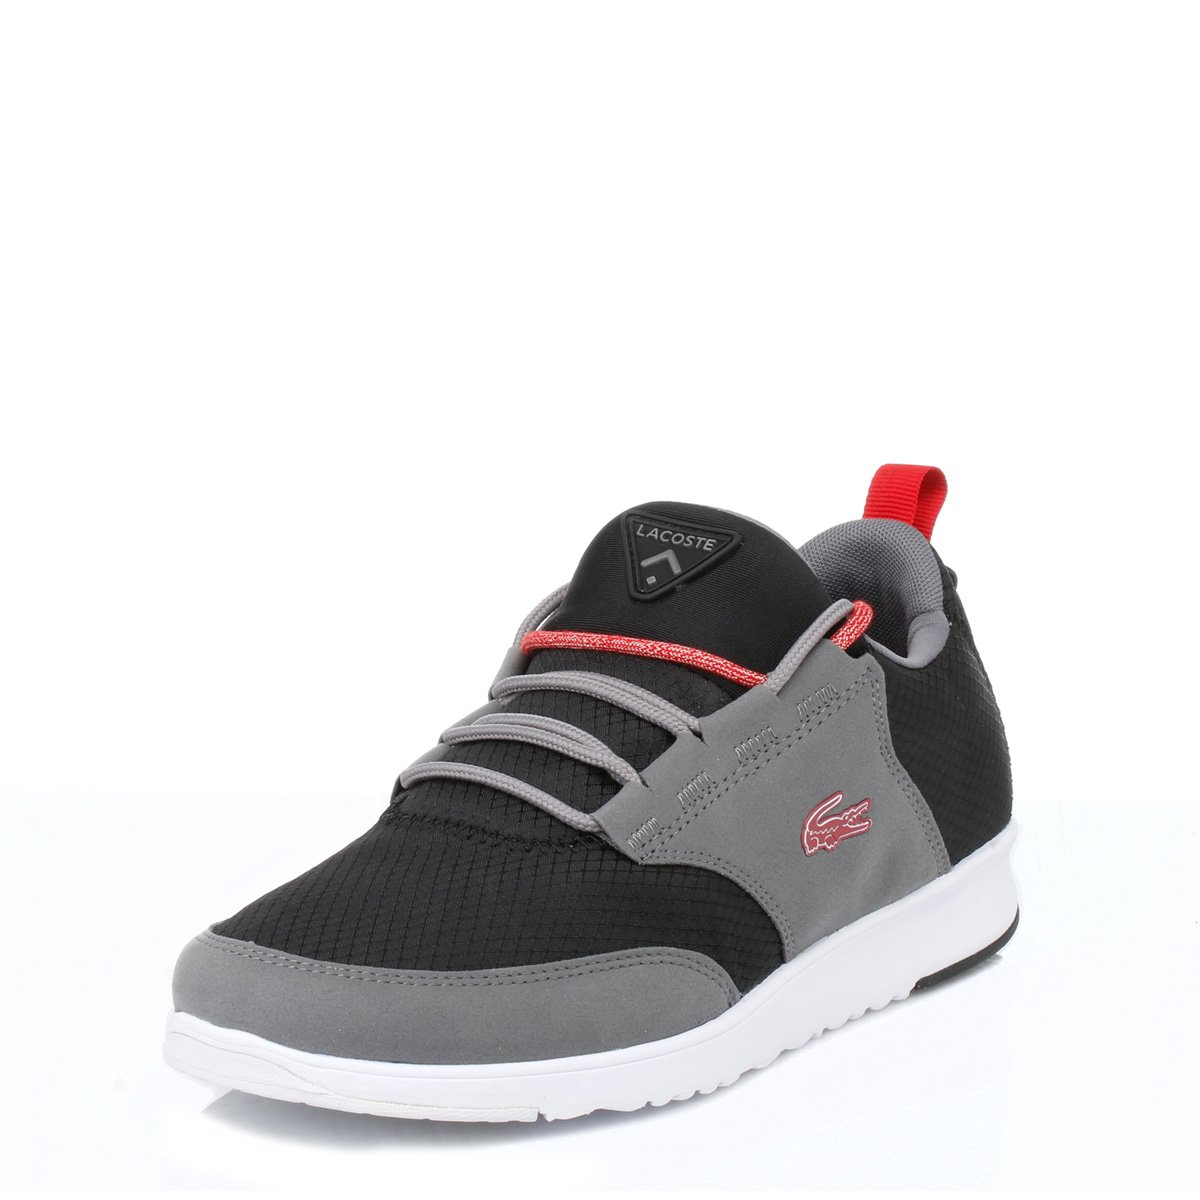 849b83061f4a4 Lacoste Mens Light 01 Fitness Low Top Active Running Athletic Trainers UK  7-12  Amazon.co.uk  Shoes   Bags